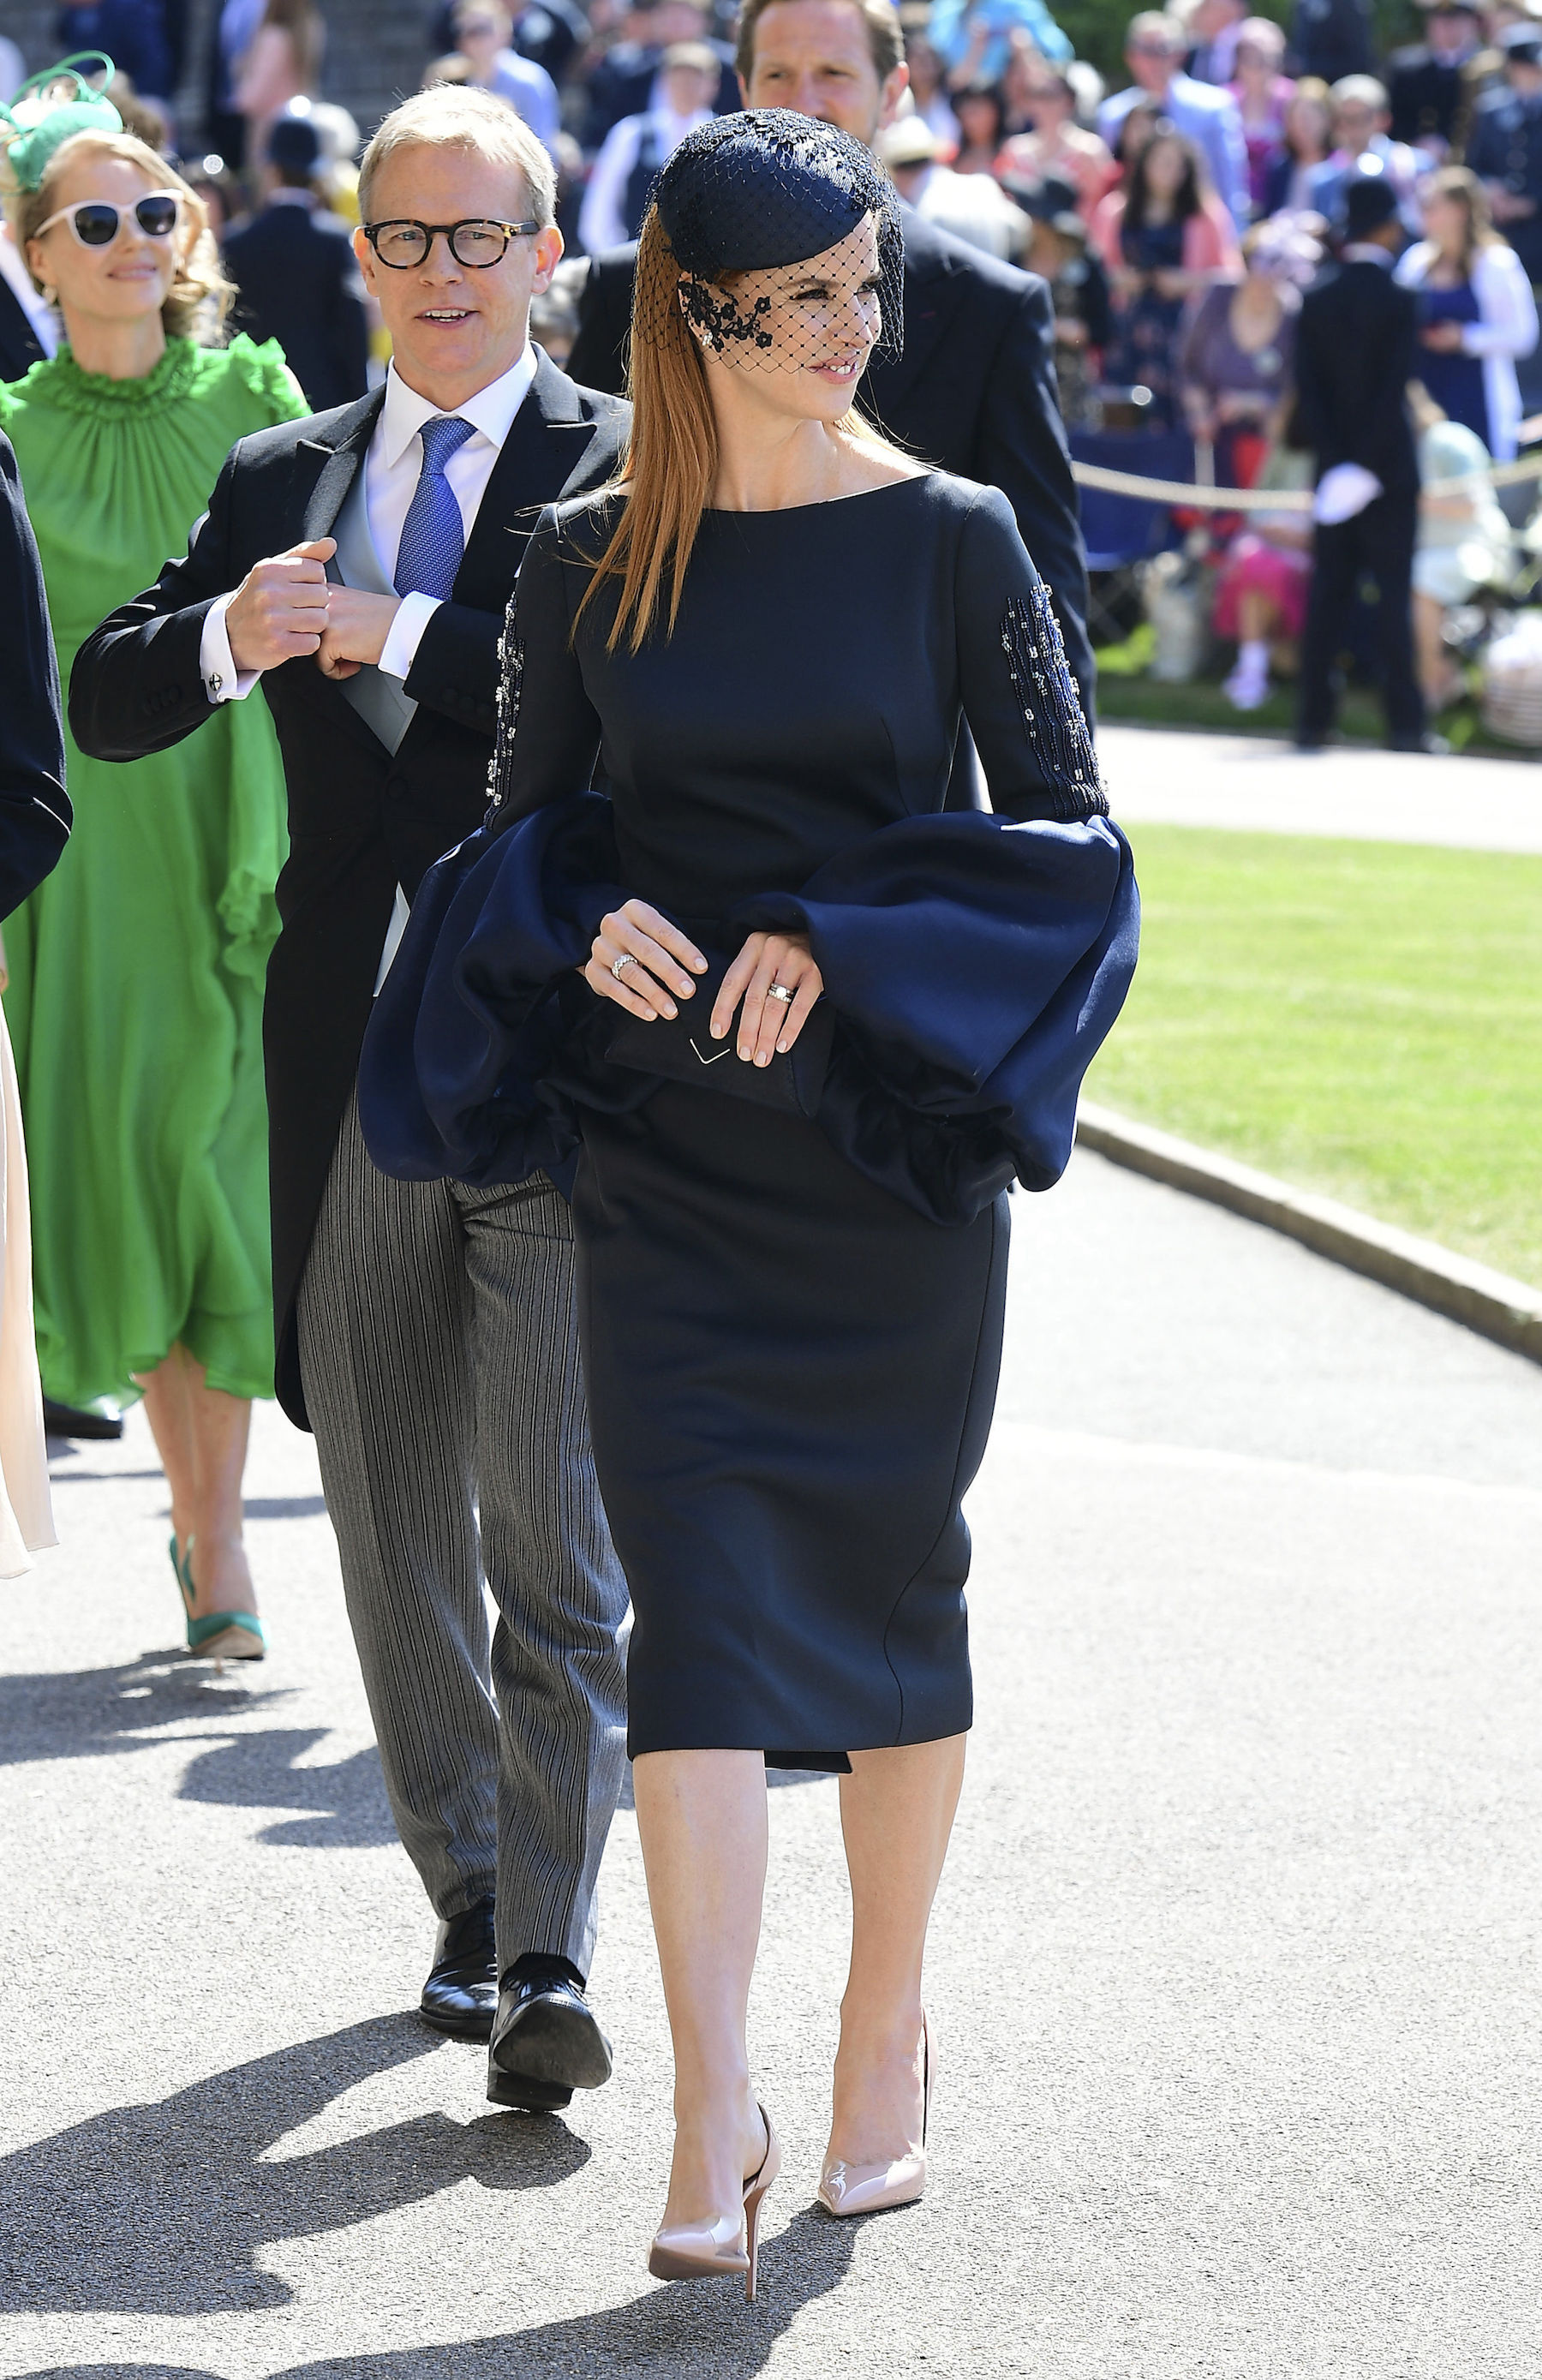 "<div class=""meta image-caption""><div class=""origin-logo origin-image ap""><span>AP</span></div><span class=""caption-text"">Sarah Rafferty arrives for the wedding ceremony of Prince Harry and Meghan Markle at St. George's Chapel in Windsor Castle in Windsor, near London, England, Saturday, May 19, 2018. (Gareth Fuller/PA Wire)</span></div>"